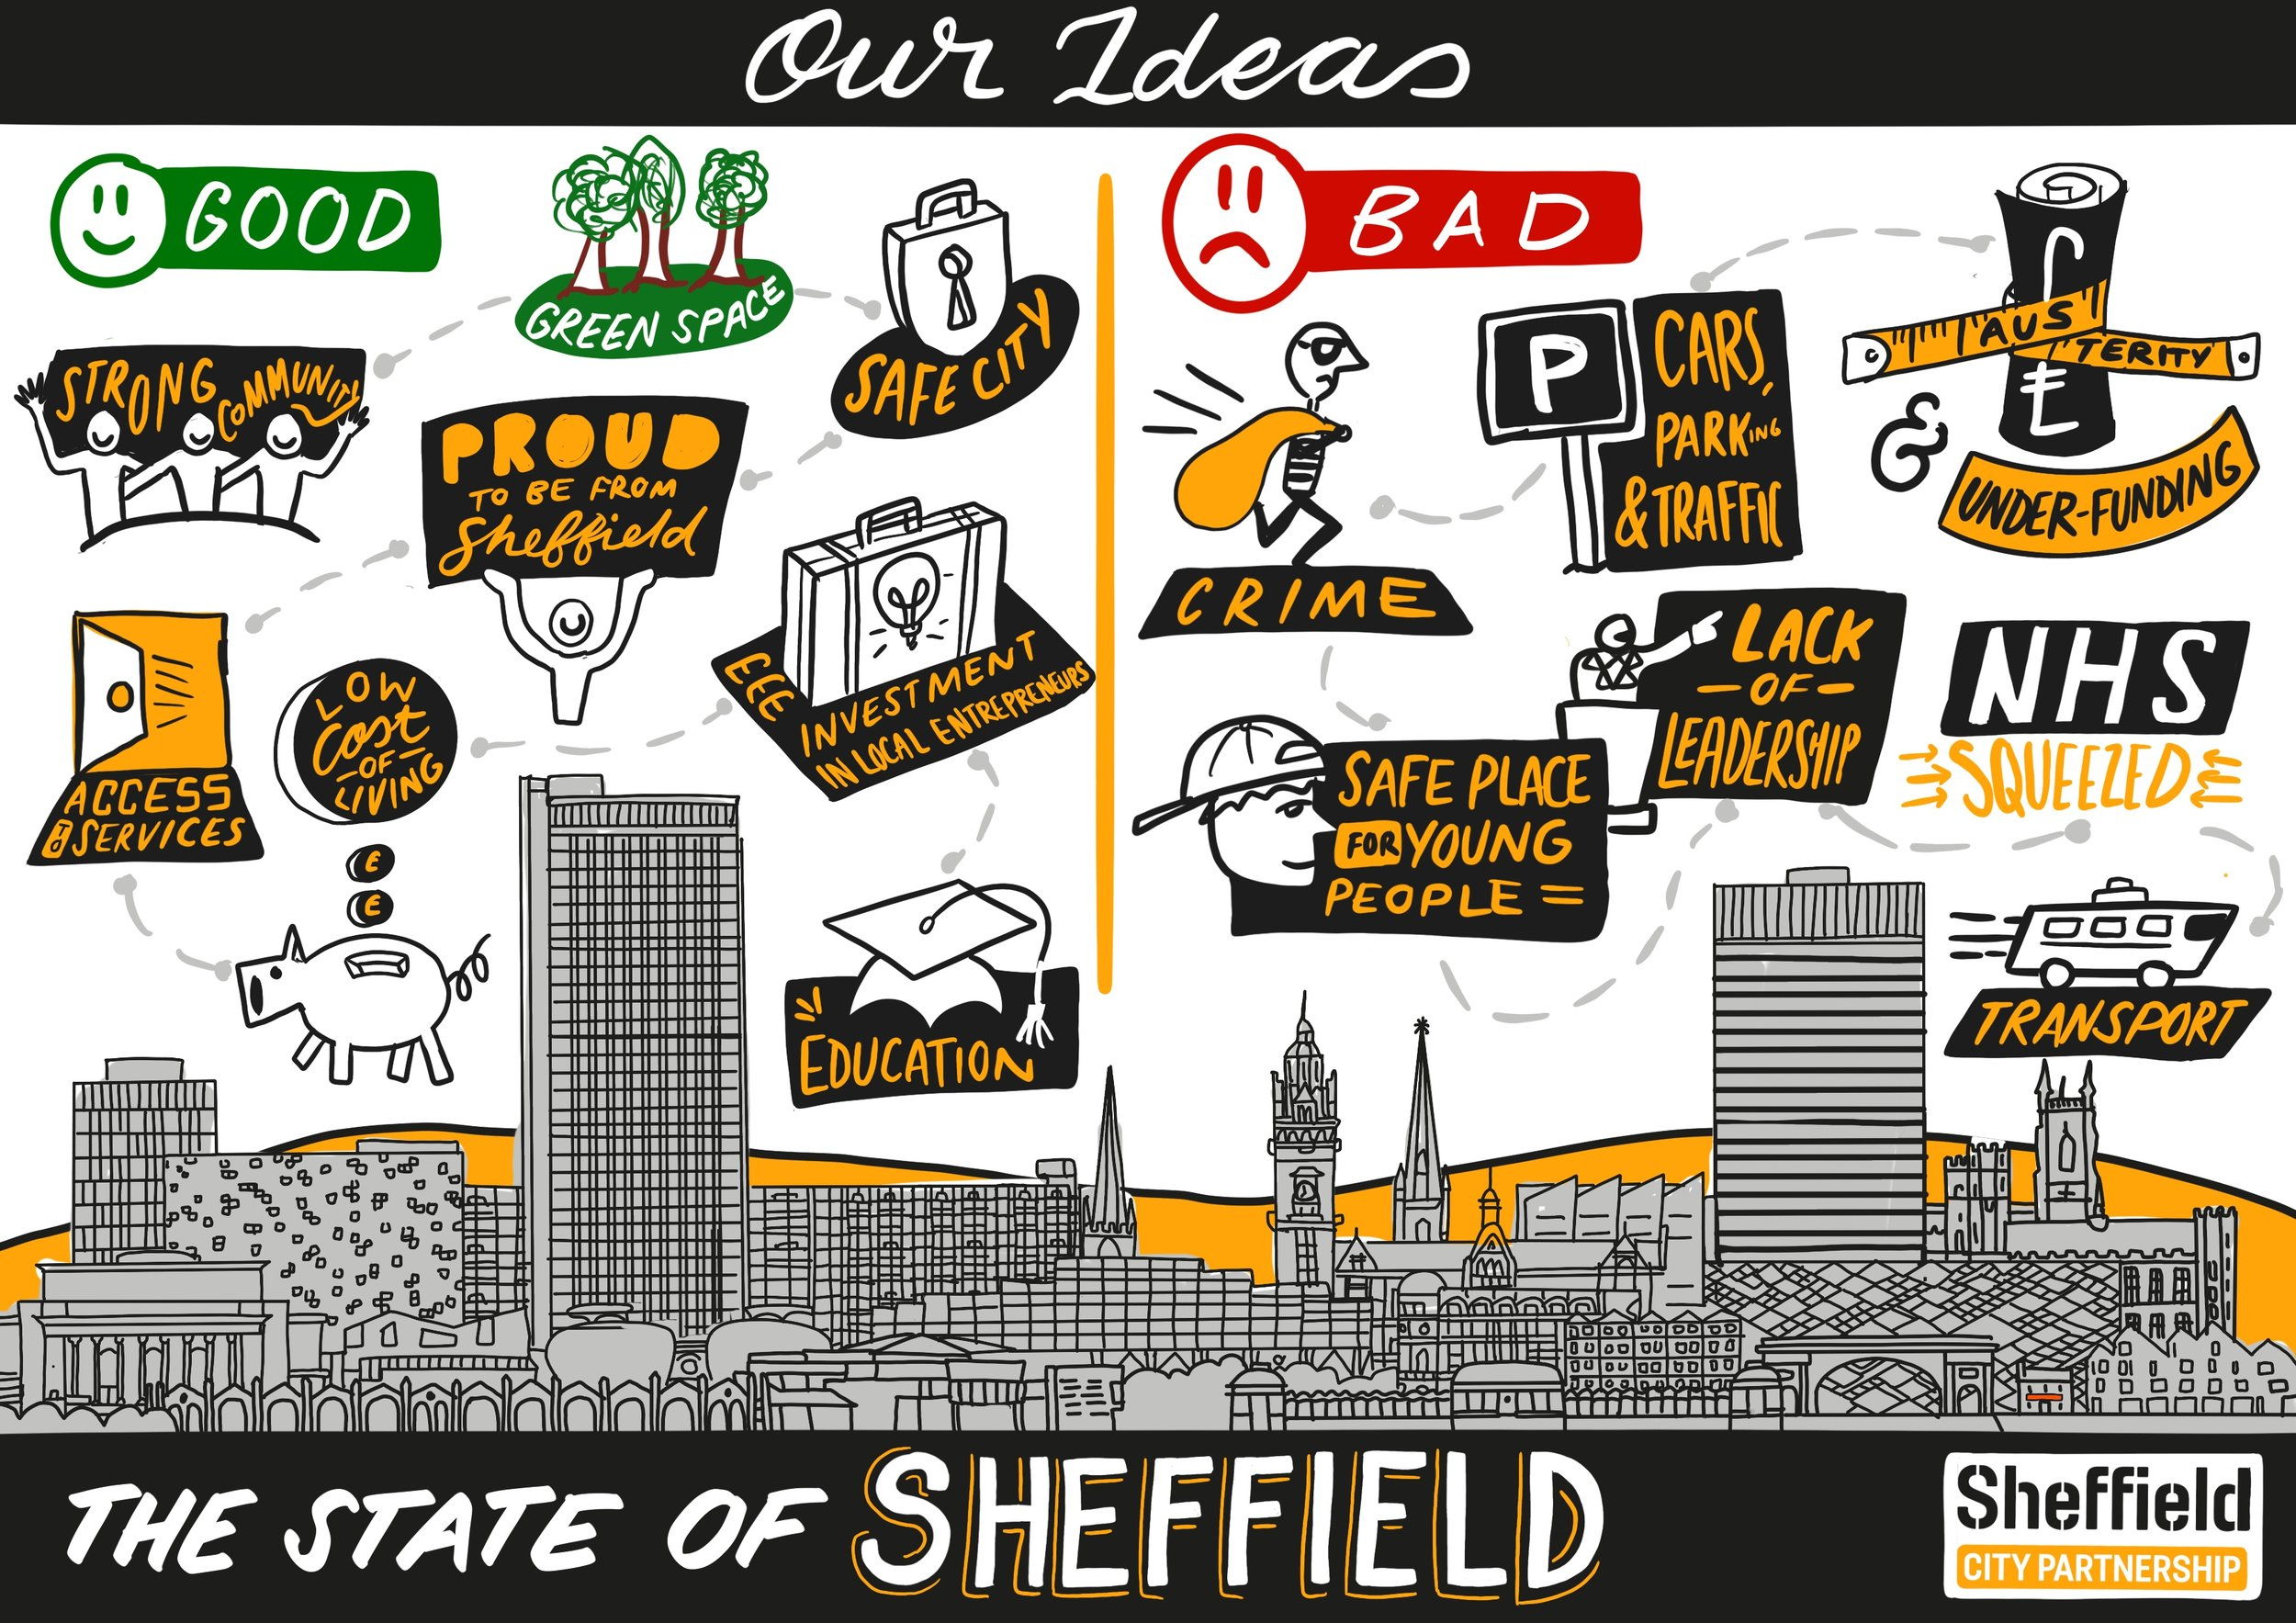 Our Ideas About Sheffield.jpg